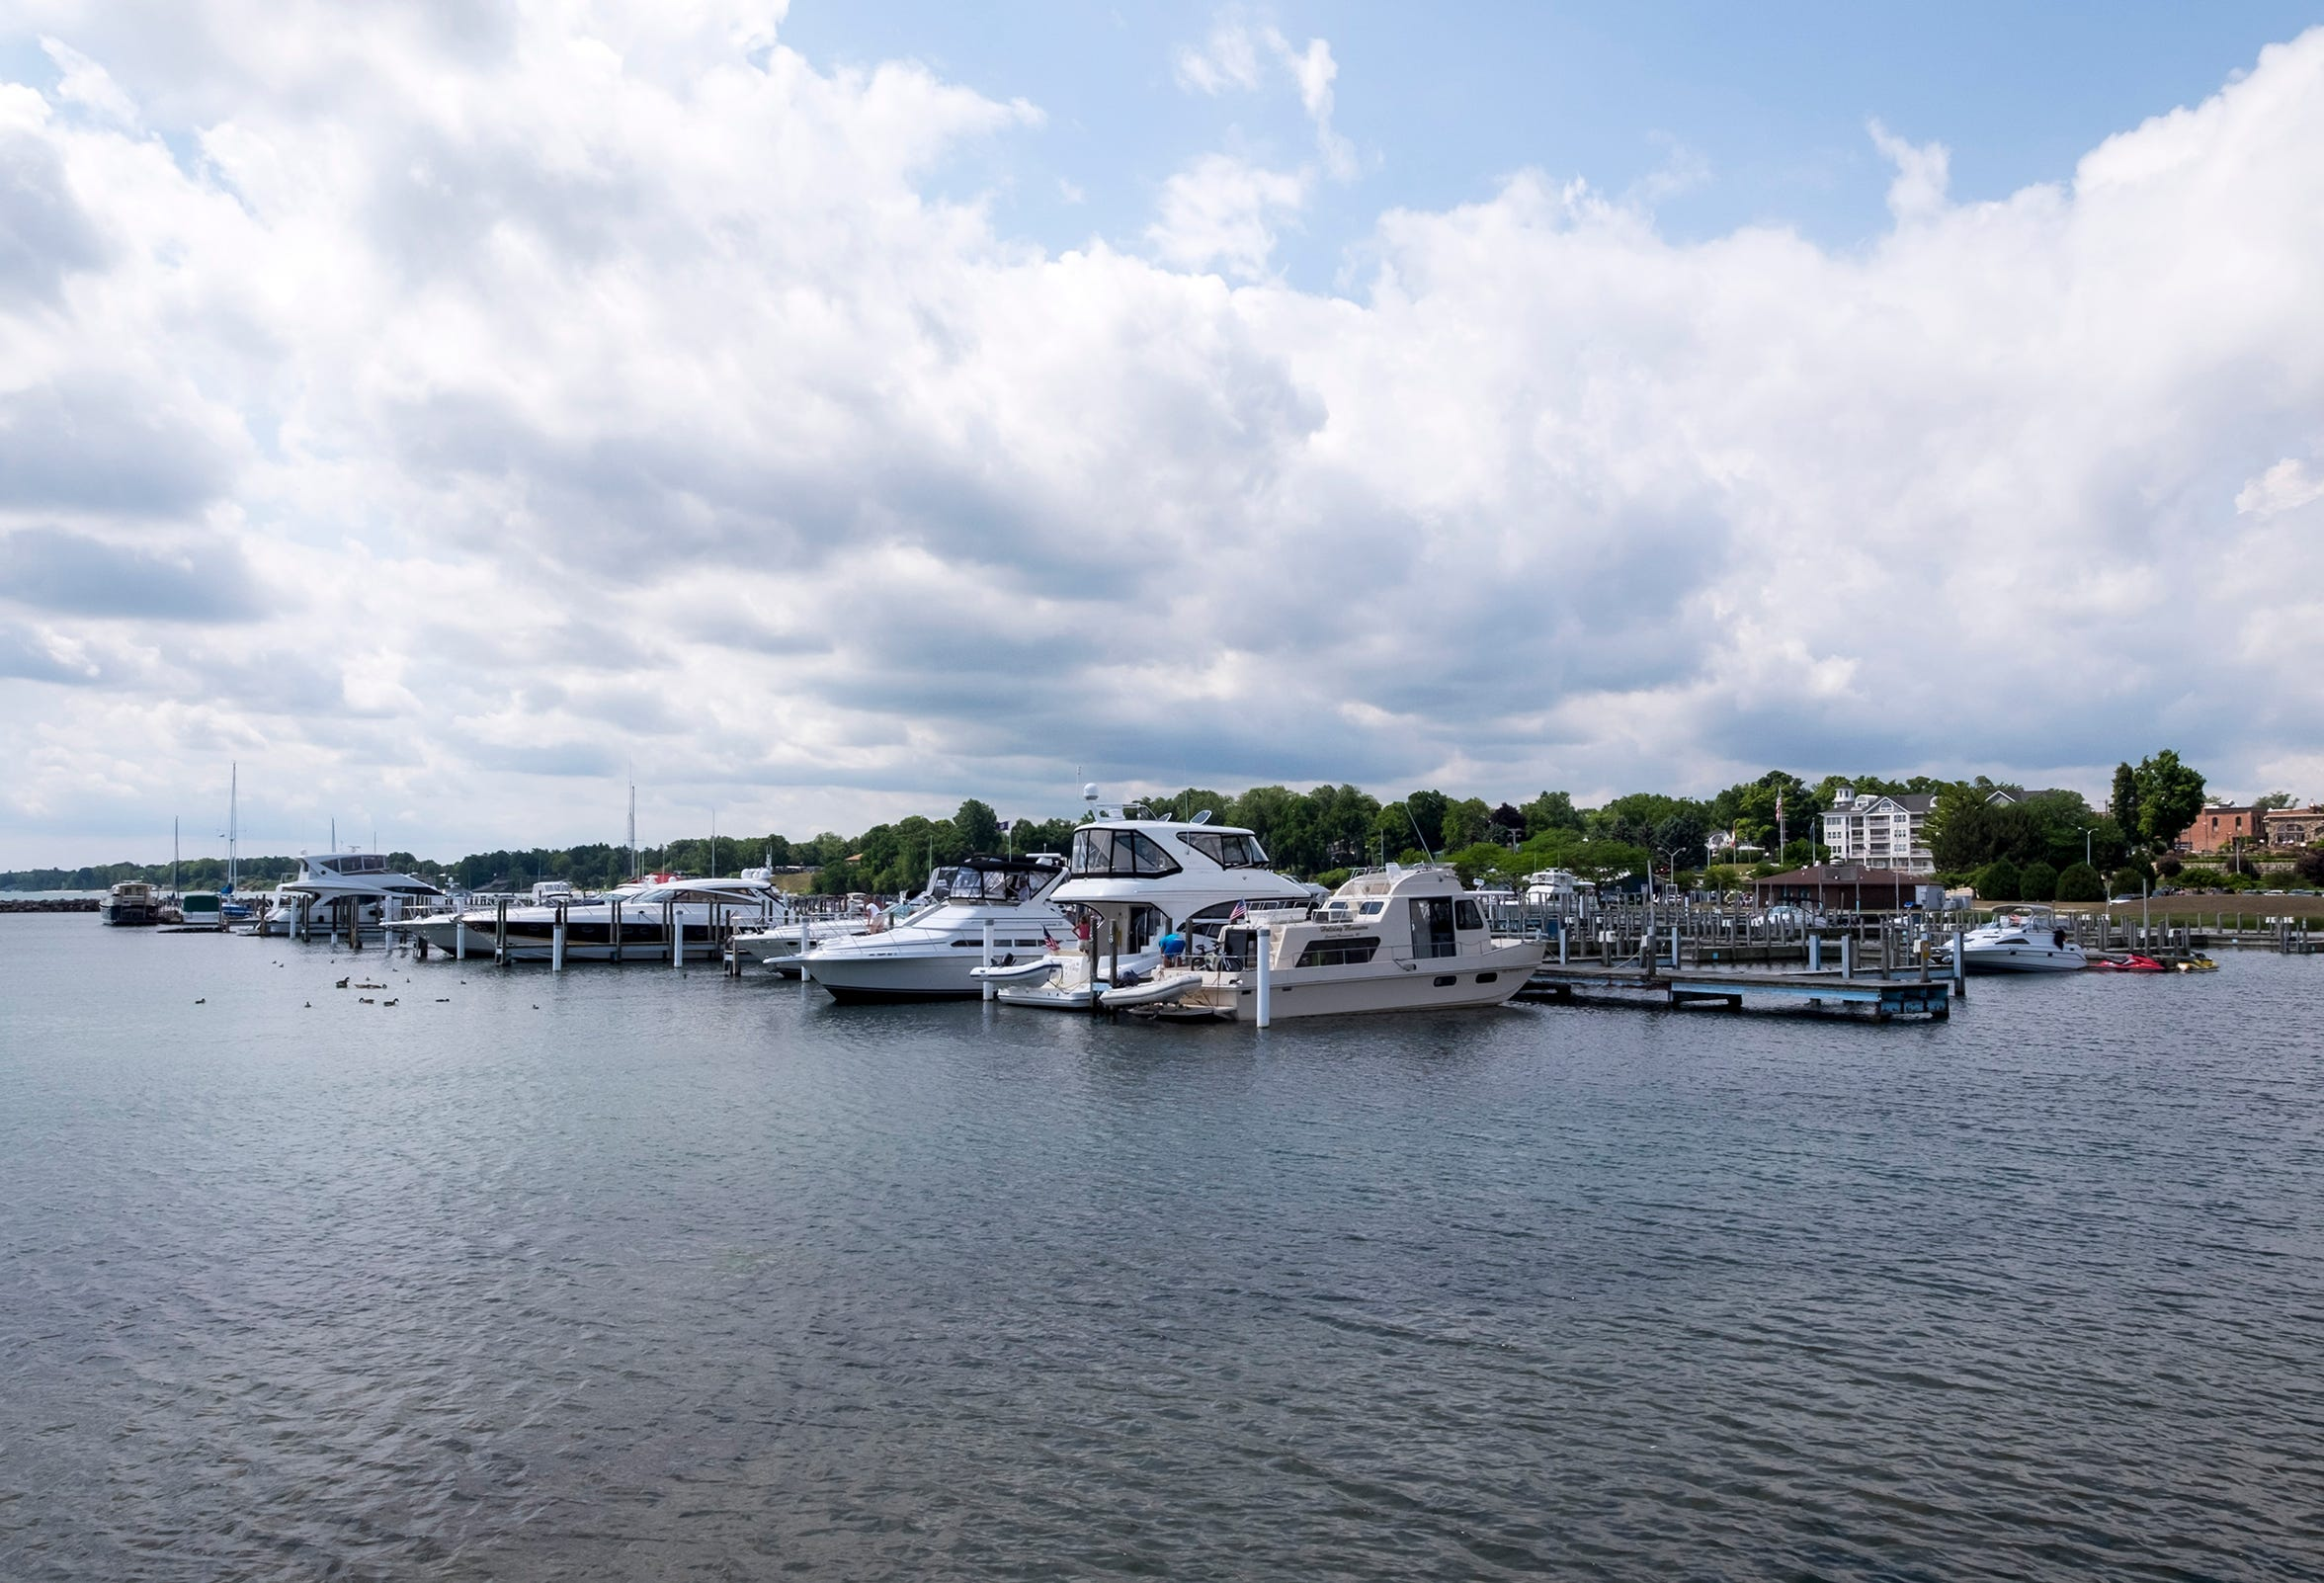 Lexington has been selected to be part of the Sustainable Small Harbors project, funded by Michigan Sea Grant and other partners. The goal of the project is to identify the factors that keep small harbors from becoming sustainable and to provide community leaders with the tools to assess and strengthen them.